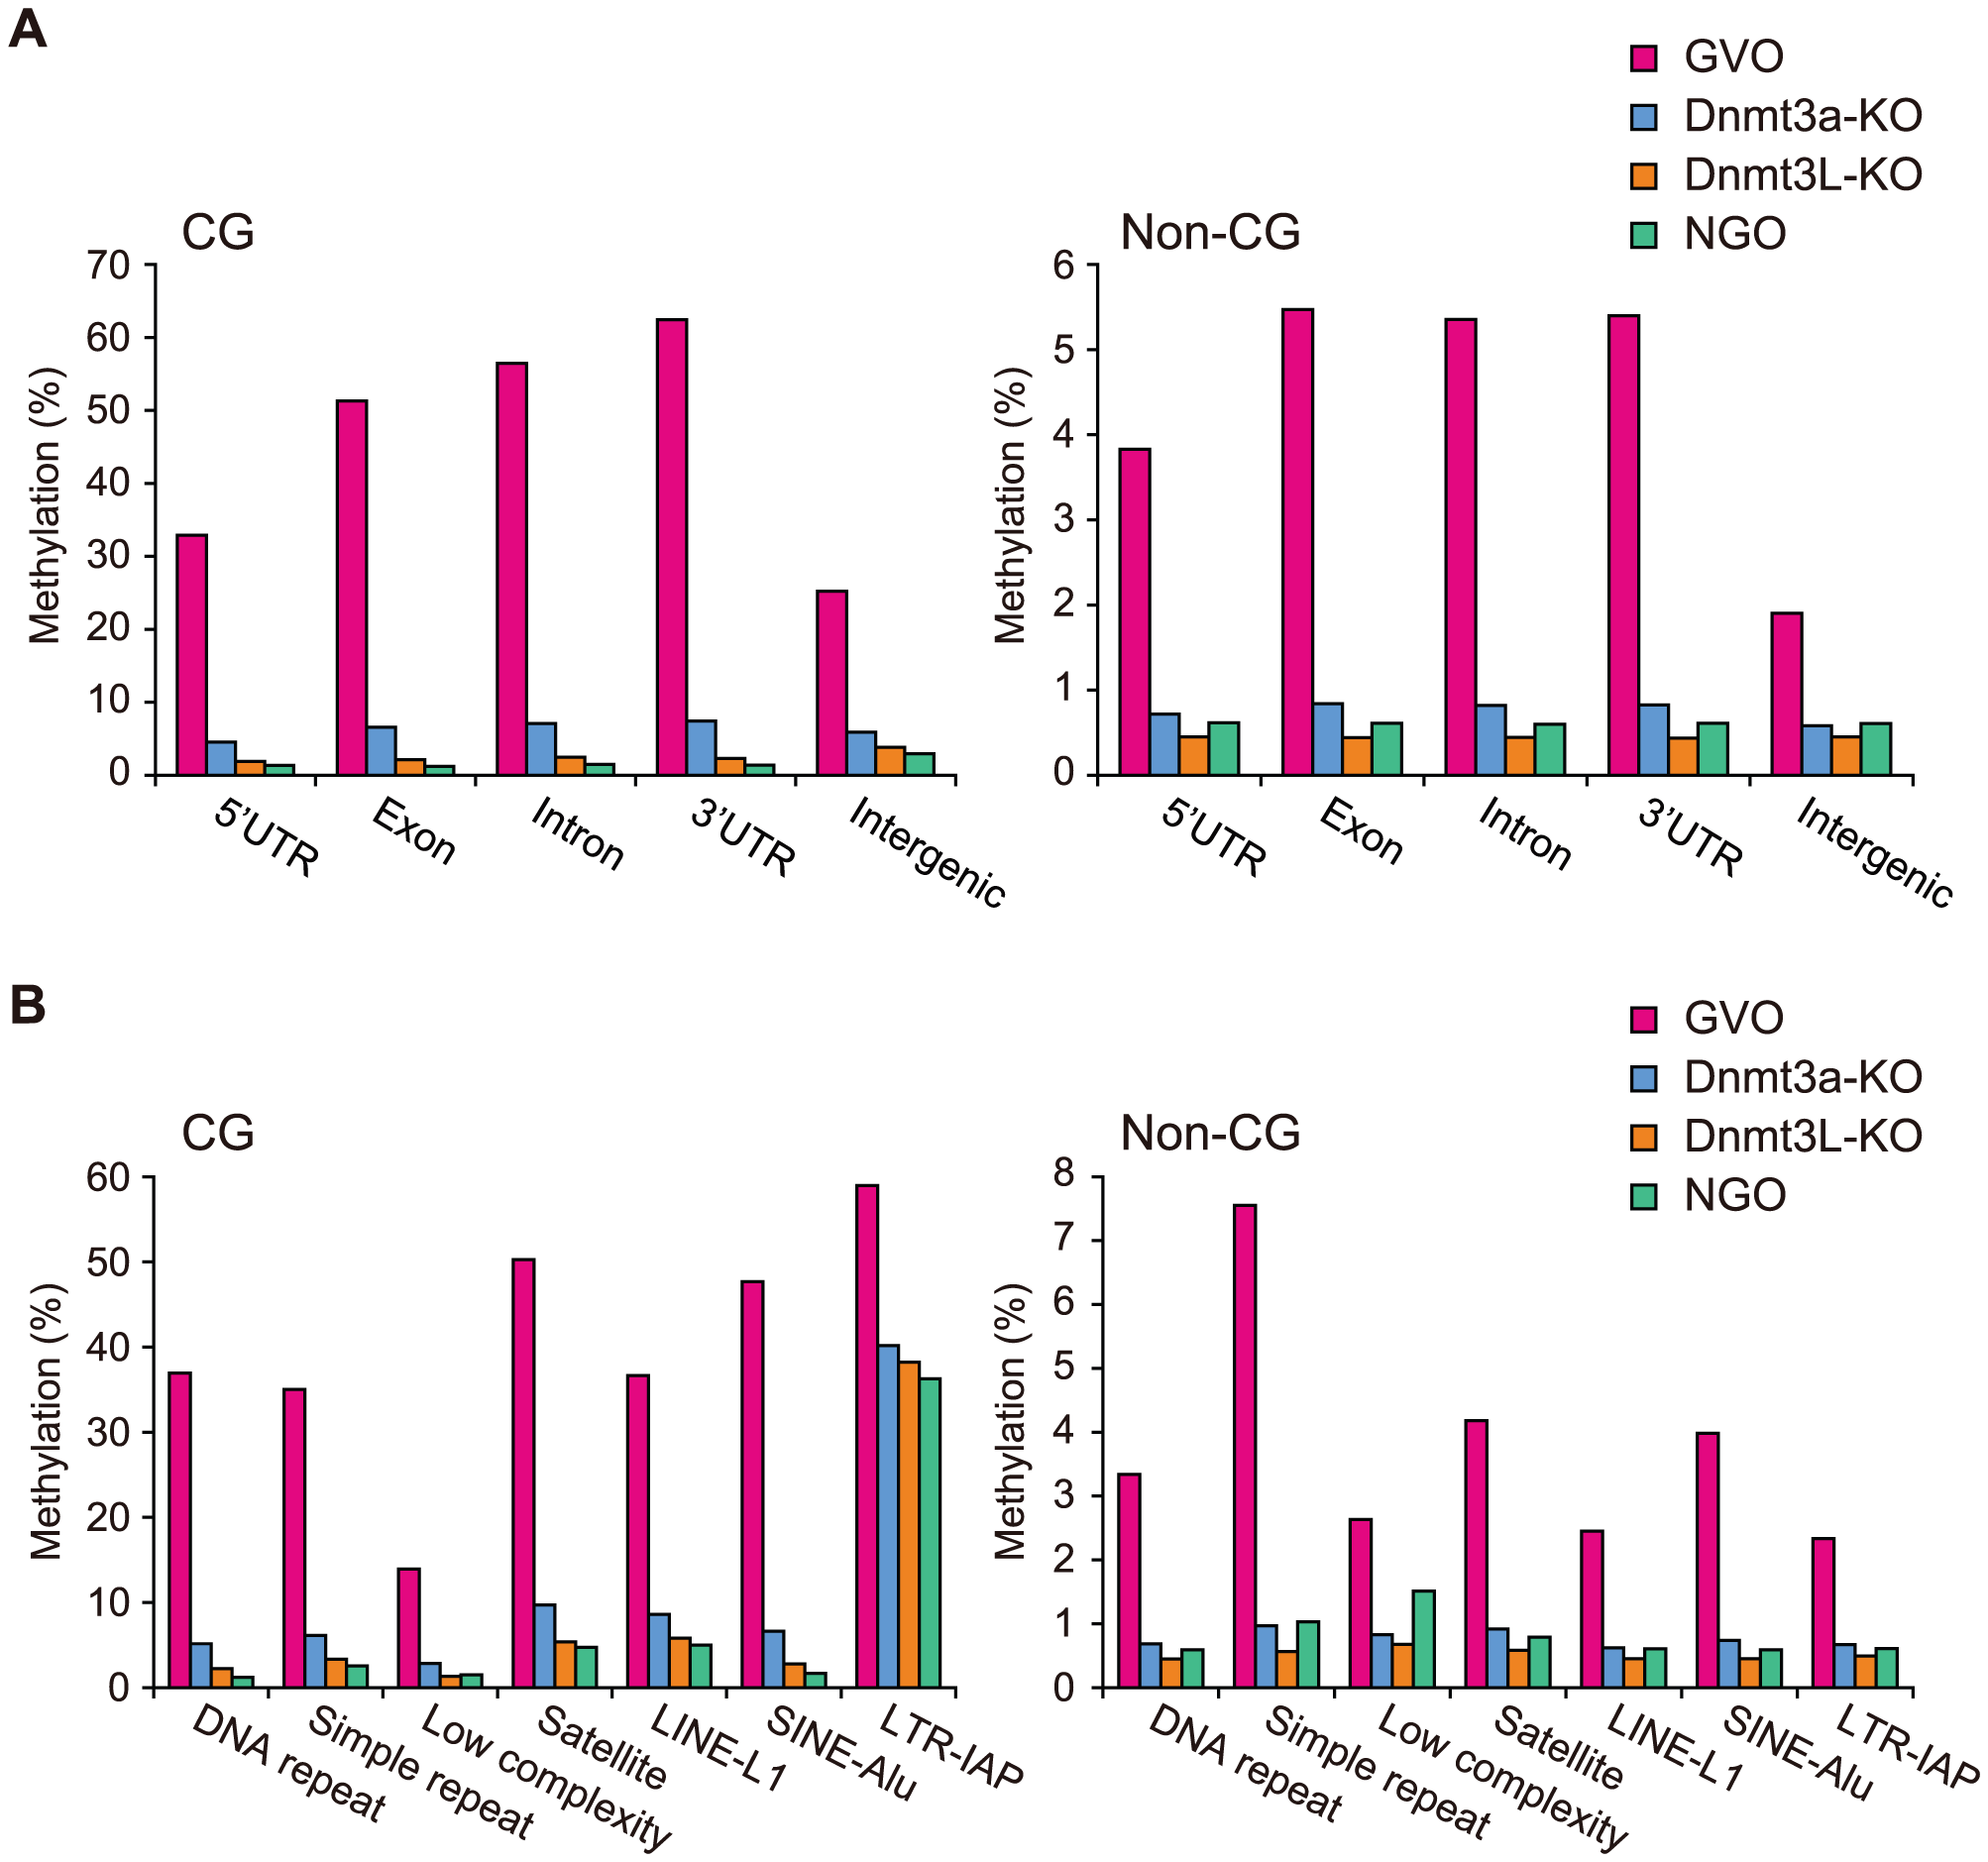 CG and non-CG methylation levels in different genomic elements in NGOs, GVOs, Dnmt3a-KO, and Dnmt3L-KO.